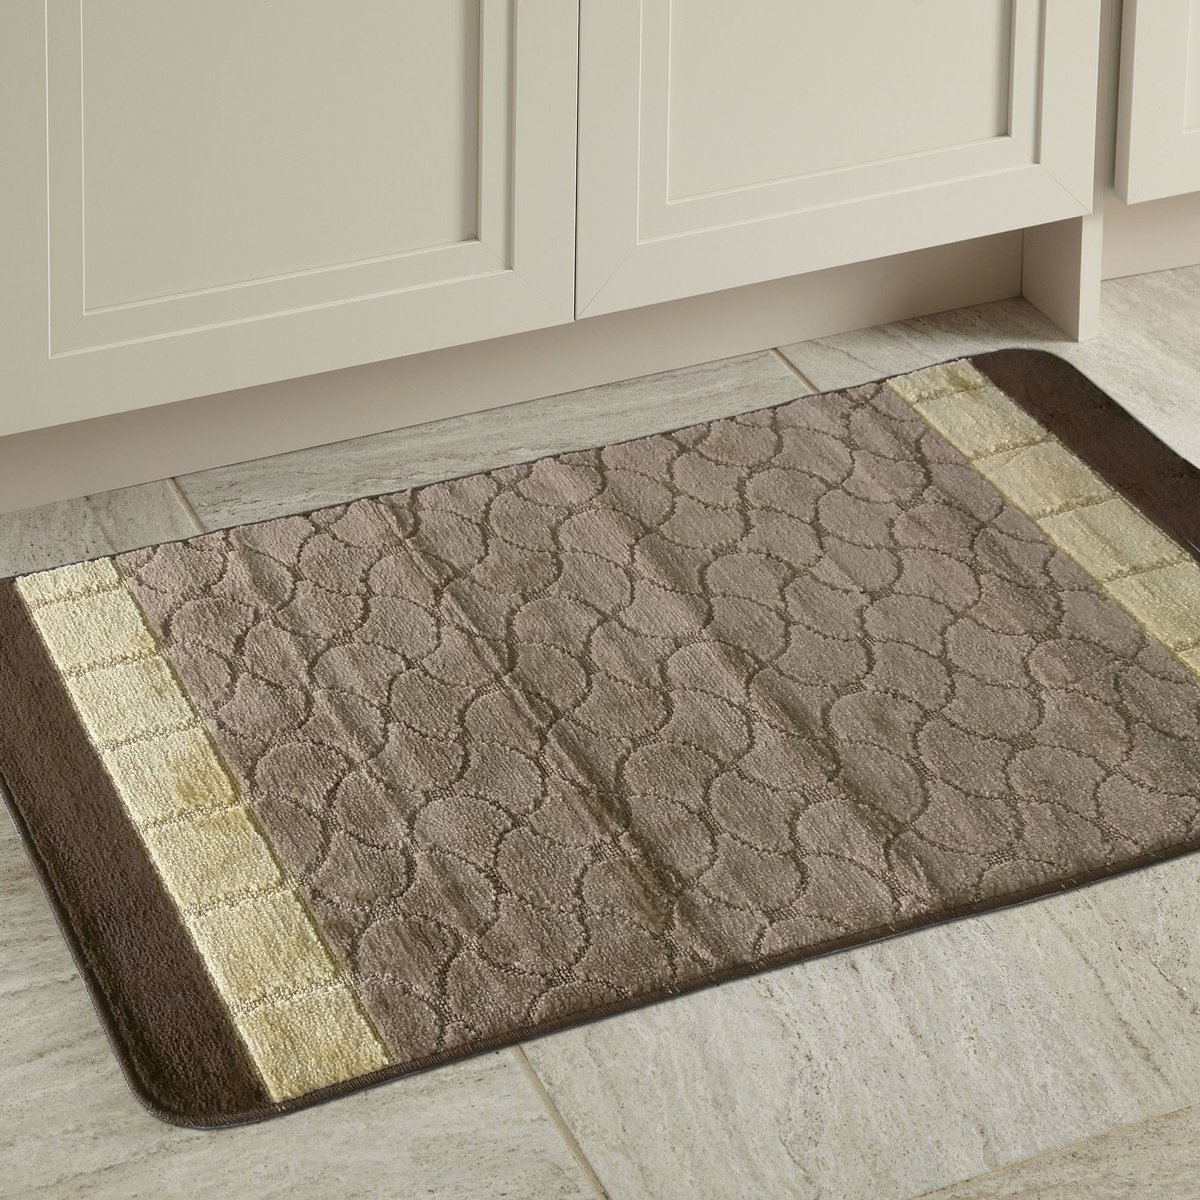 Cheap Bathroom Rugs Brown Find Bathroom Rugs Brown Deals On Line At Alibaba Com